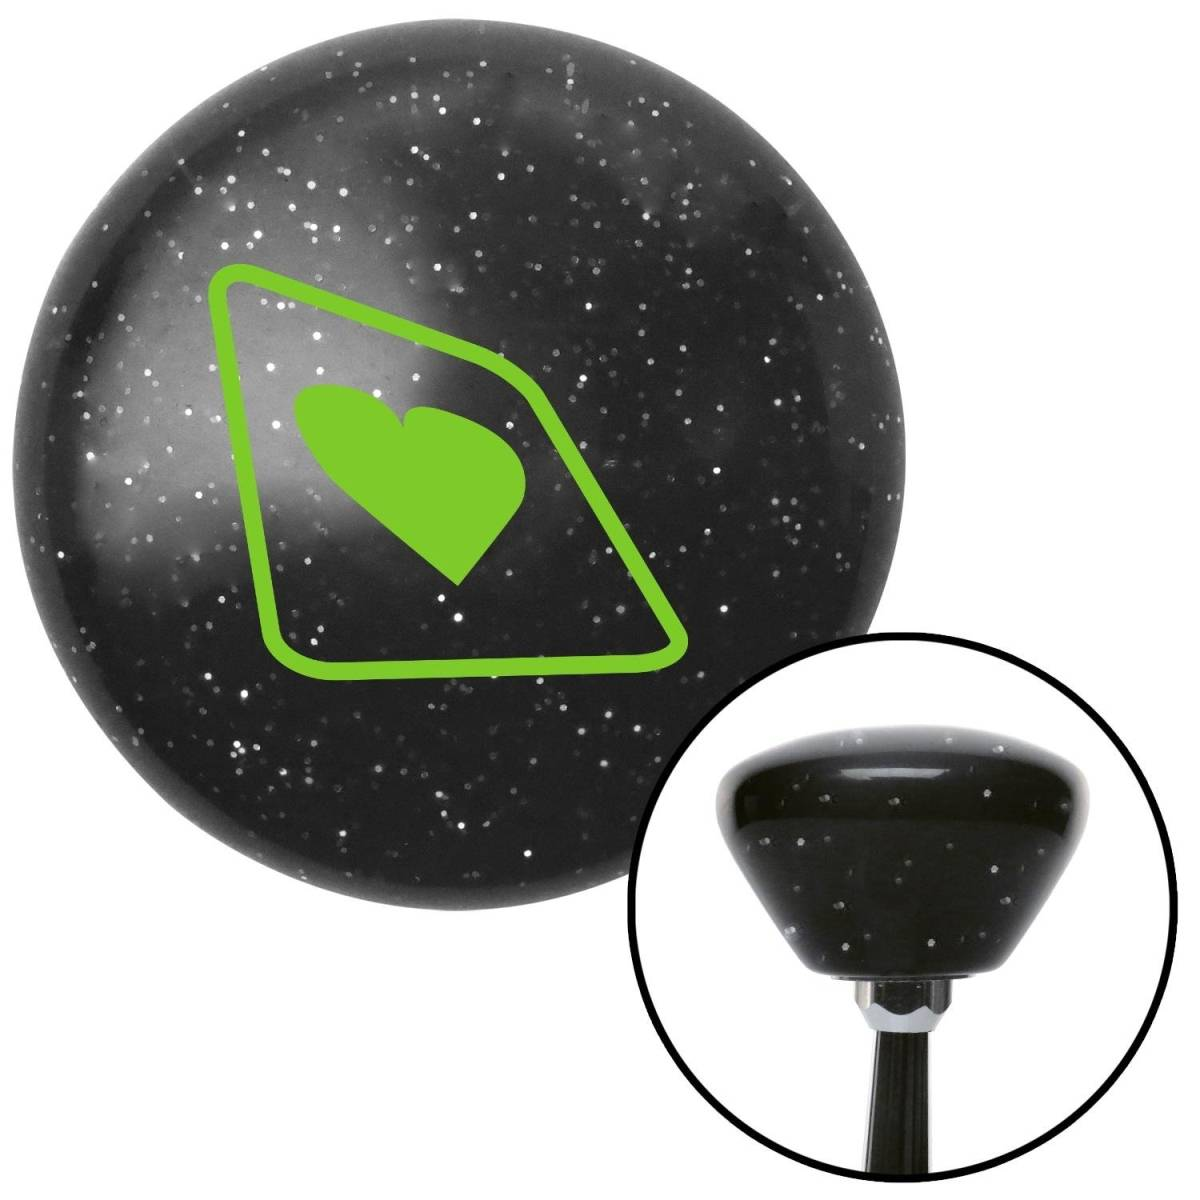 American Shifter Company American Shifter 169737 Green Heart on a Card Black Retro Metal Flake Shift Knob with M16 x 1.5 Insert Auto